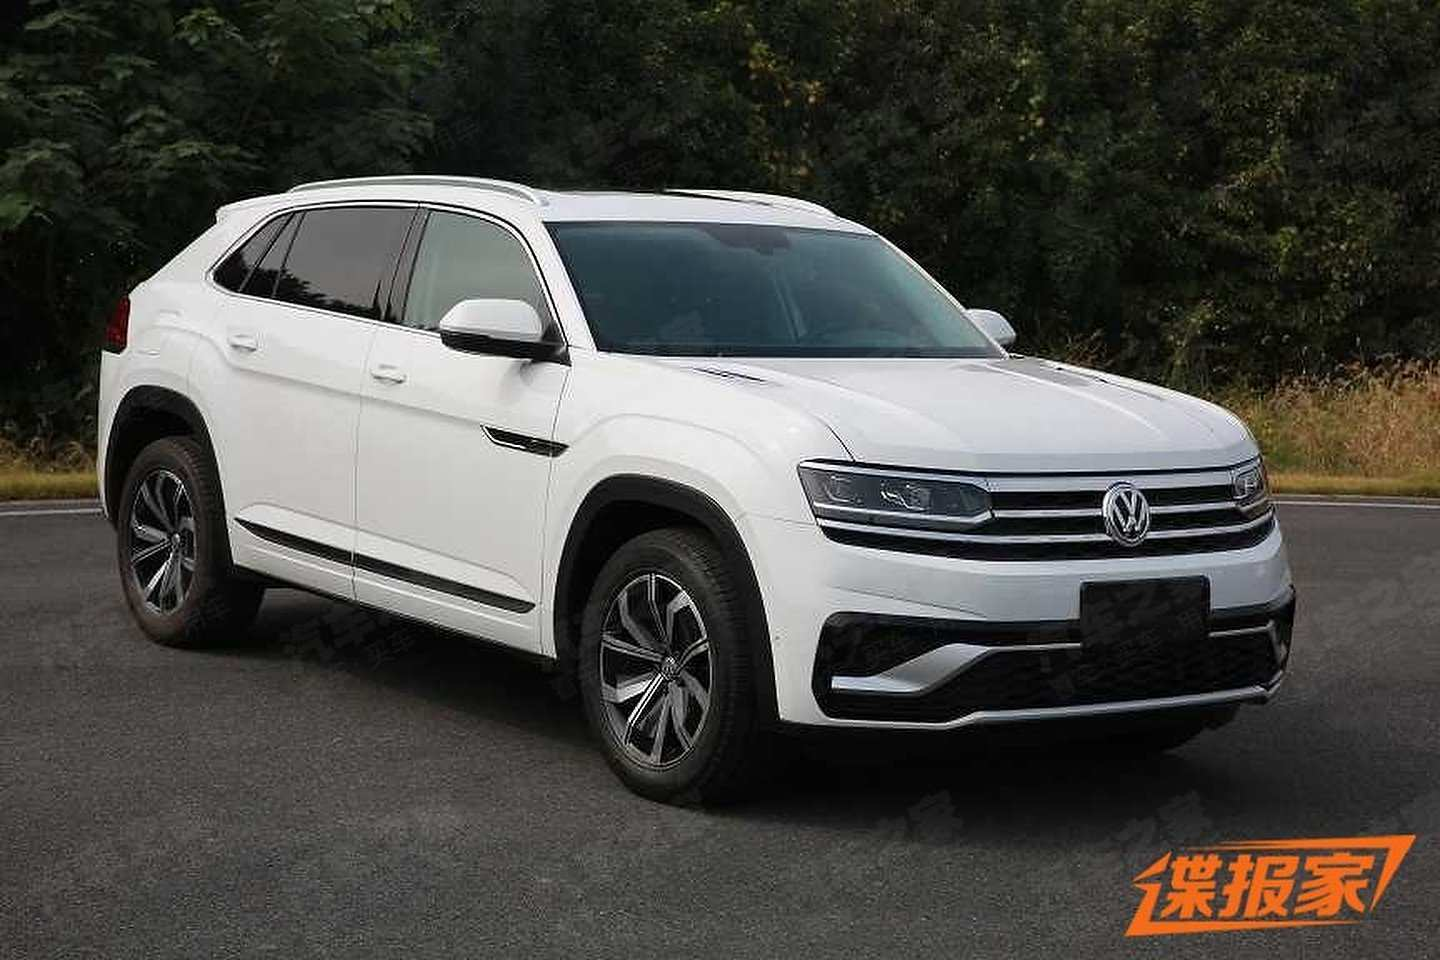 76 All New 2020 Volkswagen Atlas Release Date Rumors for 2020 Volkswagen Atlas Release Date